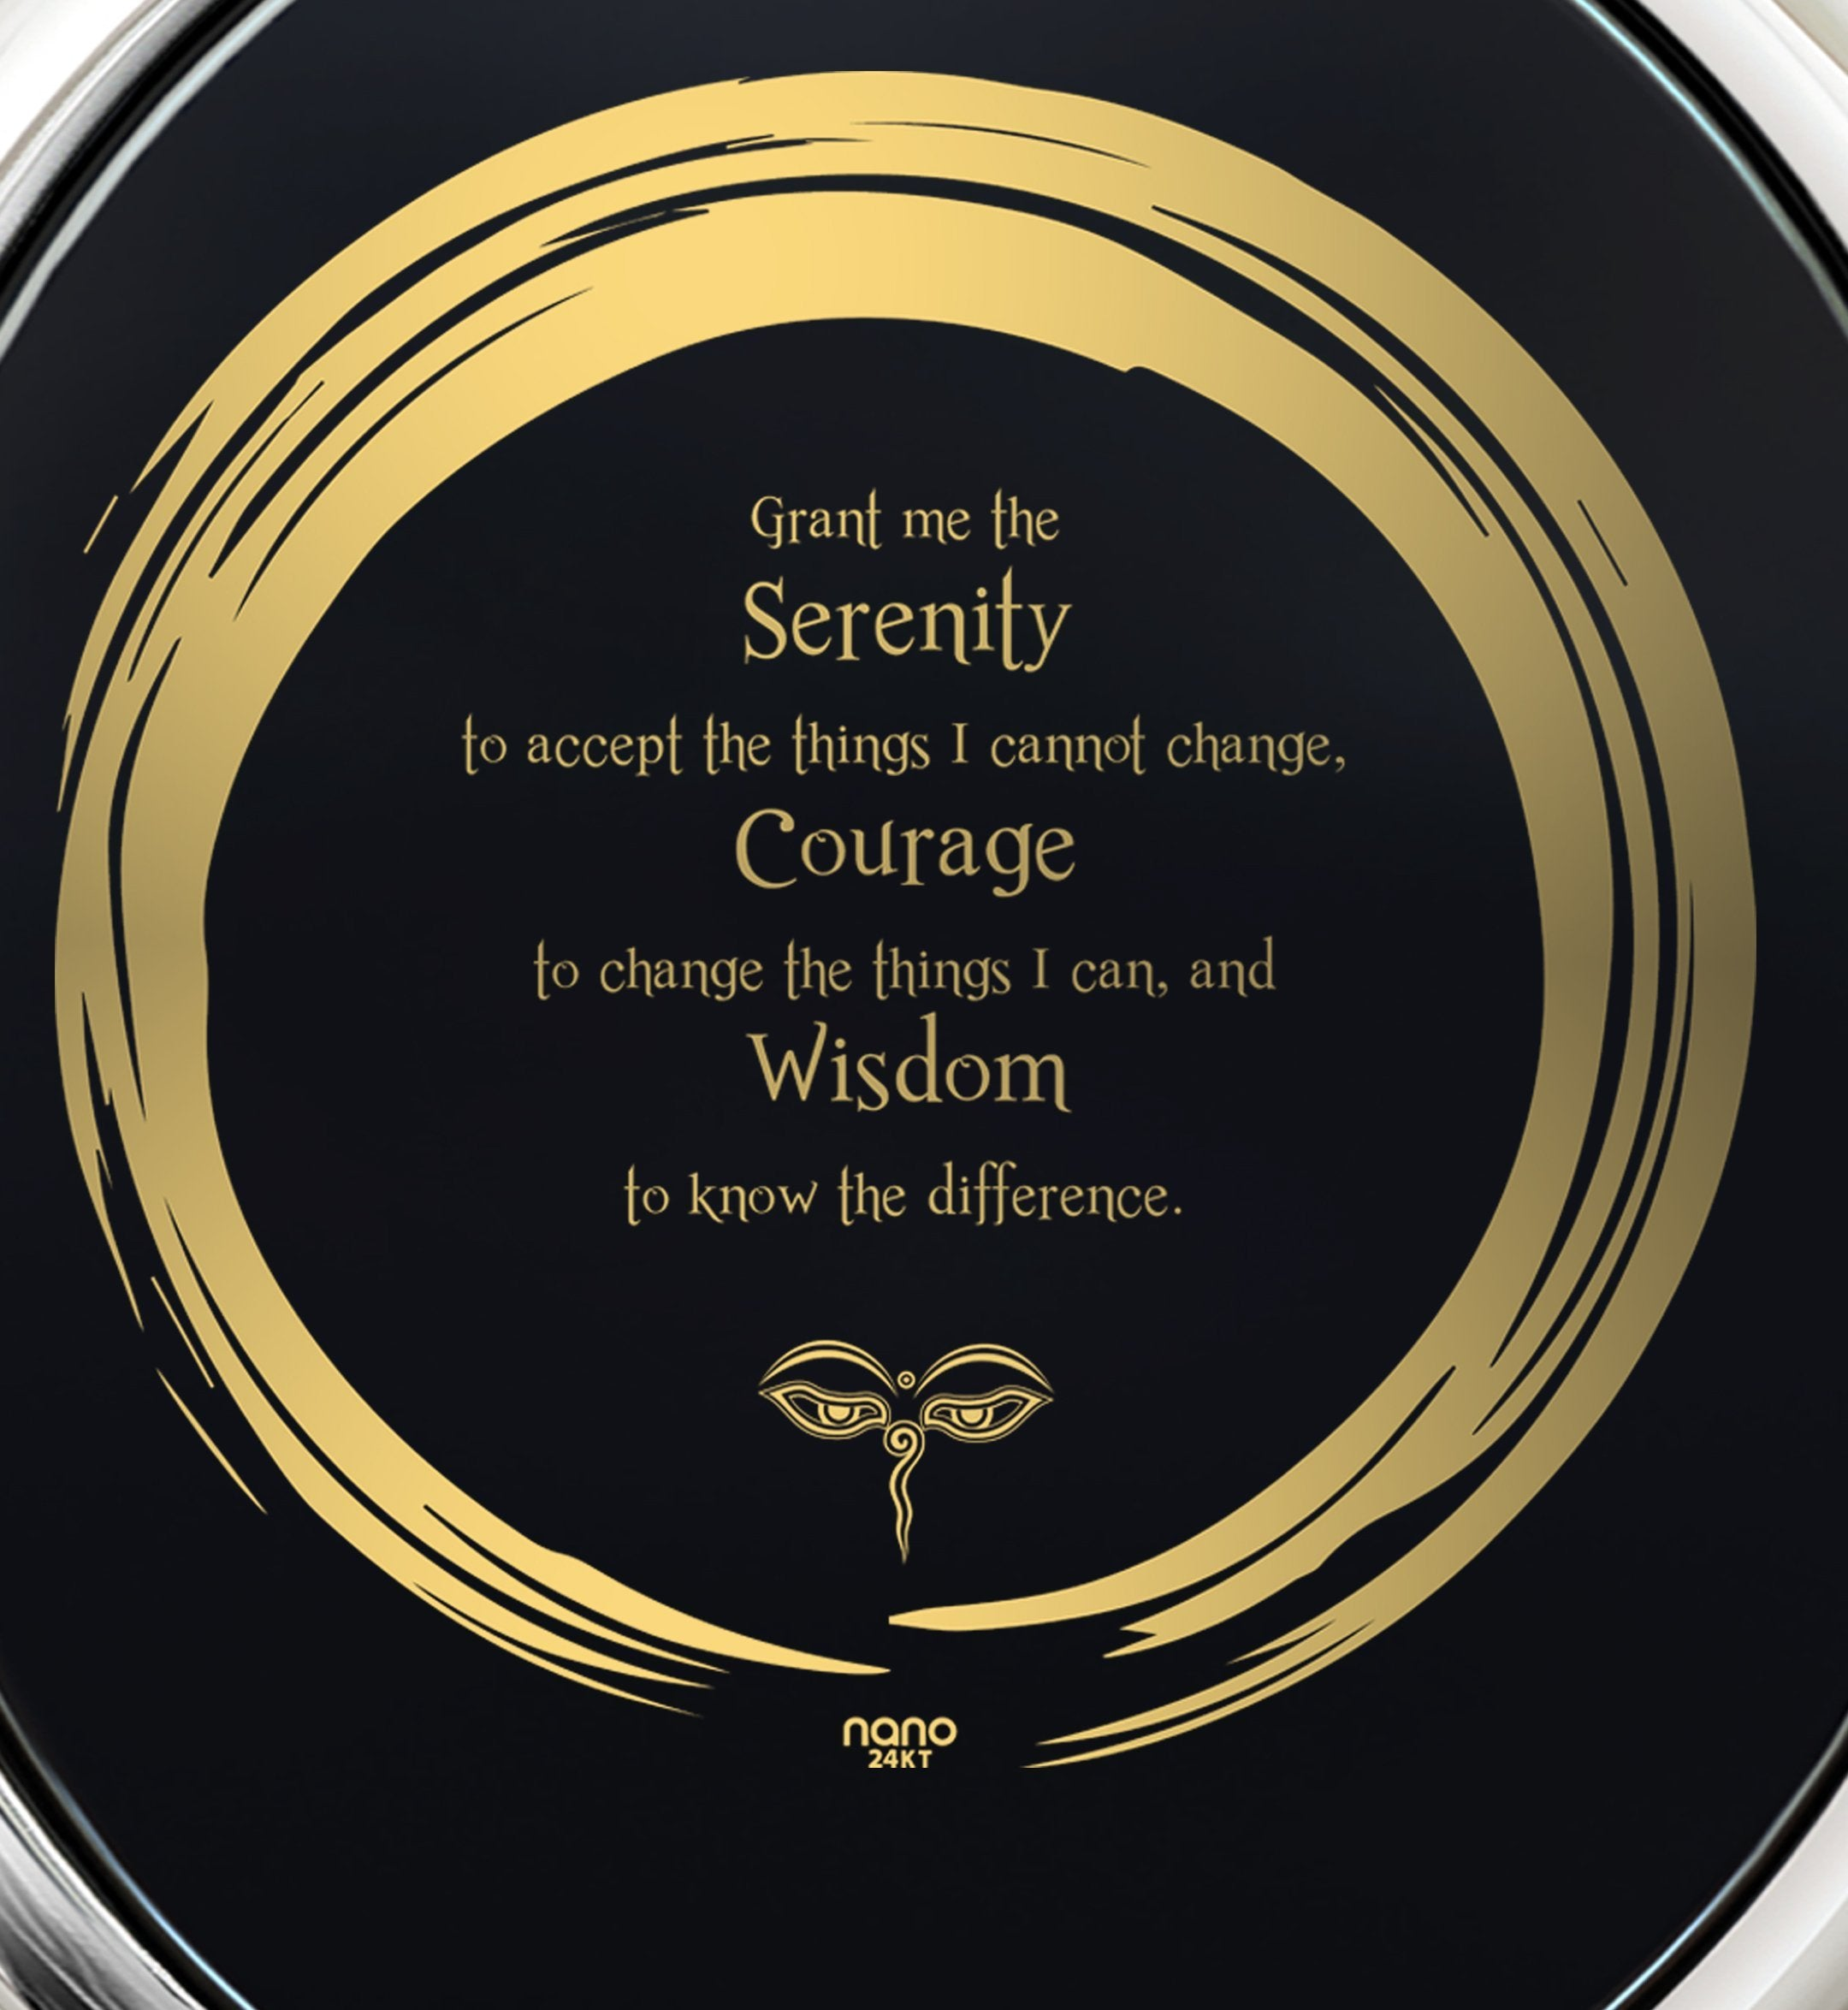 Serenity Prayer Jewelry: Great Gifts for Her, Womens Birthday Presents, Real 14k White Gold Necklace, Nano Jewelry